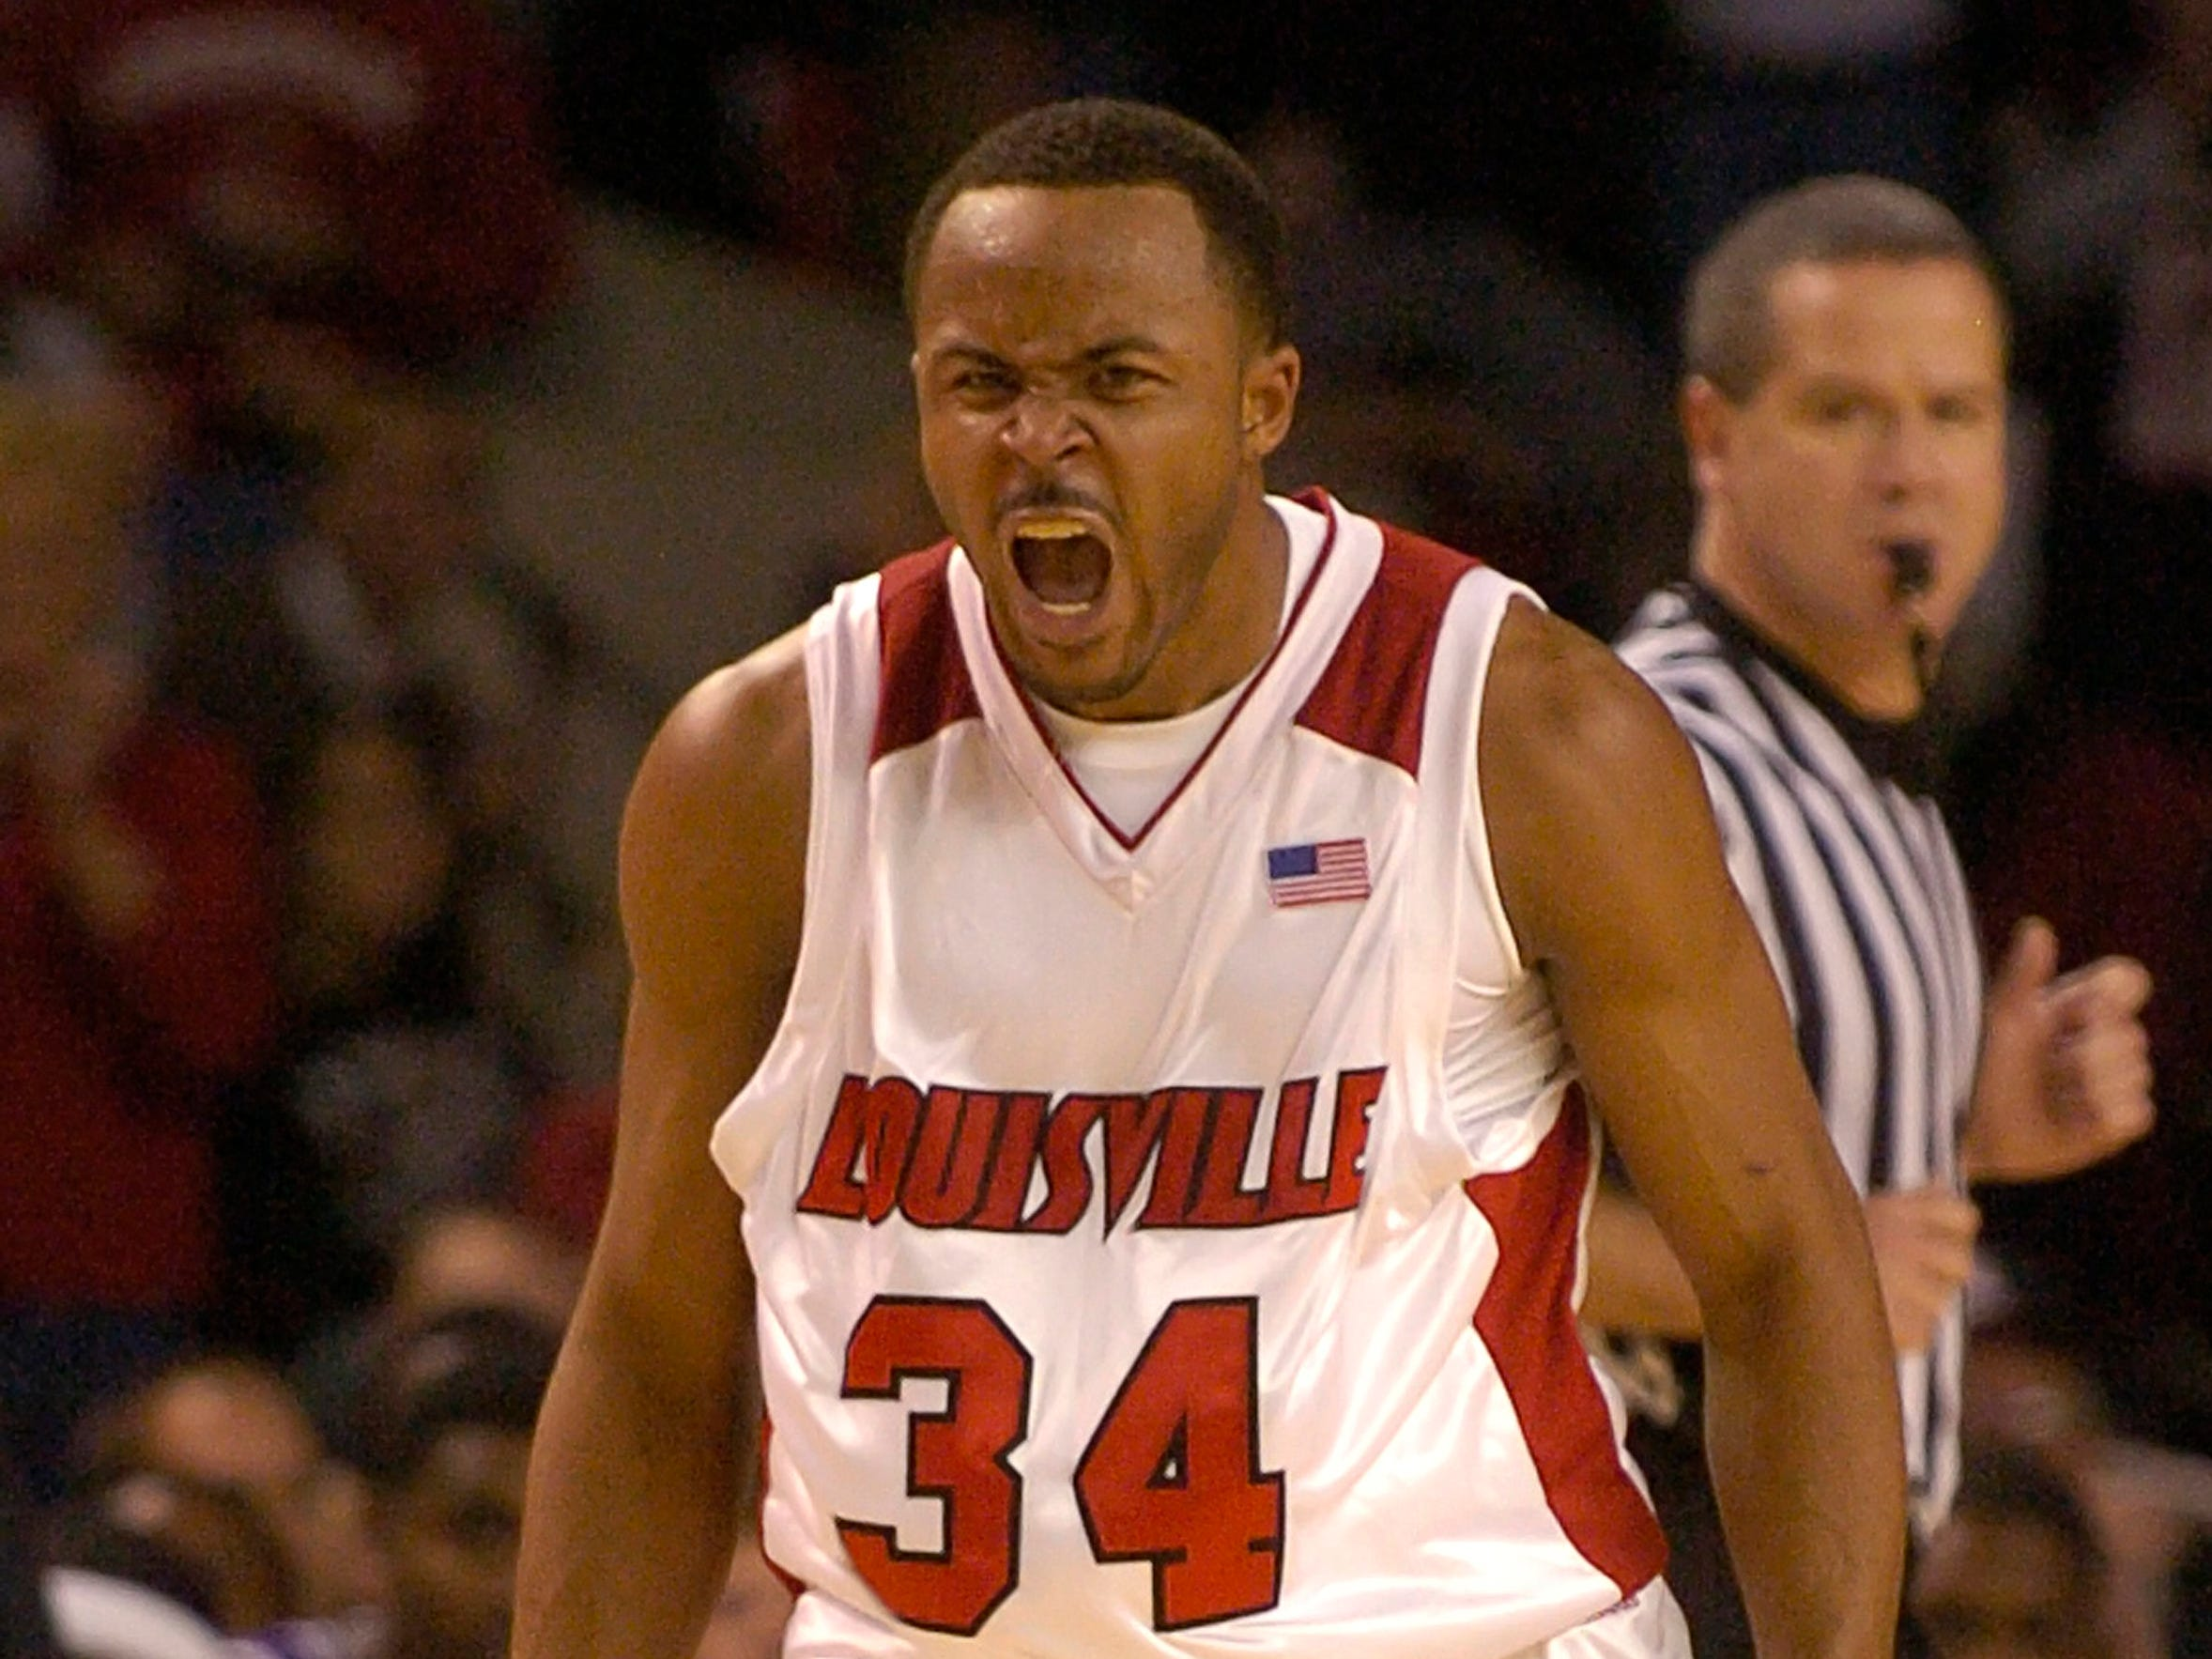 Louisville's Jerry Smith, a former Tosa East standout, played in many NCAA Tournament games throughout his career at Louisville, including in 2010.